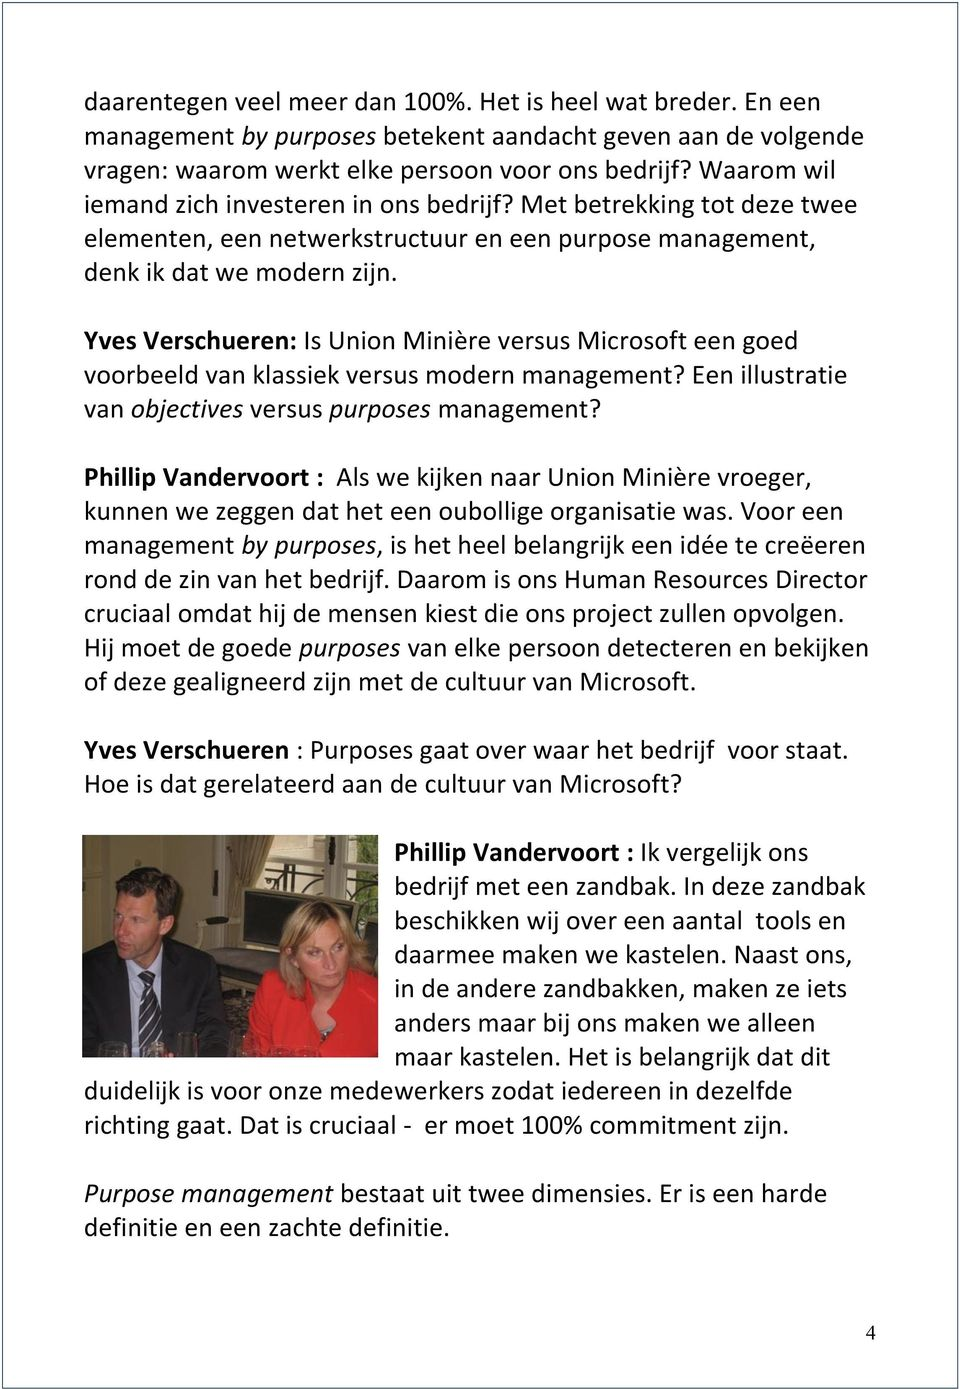 Yves Verschueren: Is Union Minière versus Microsoft een goed voorbeeld van klassiek versus modern management? Een illustratie van objectives versus purposes management?